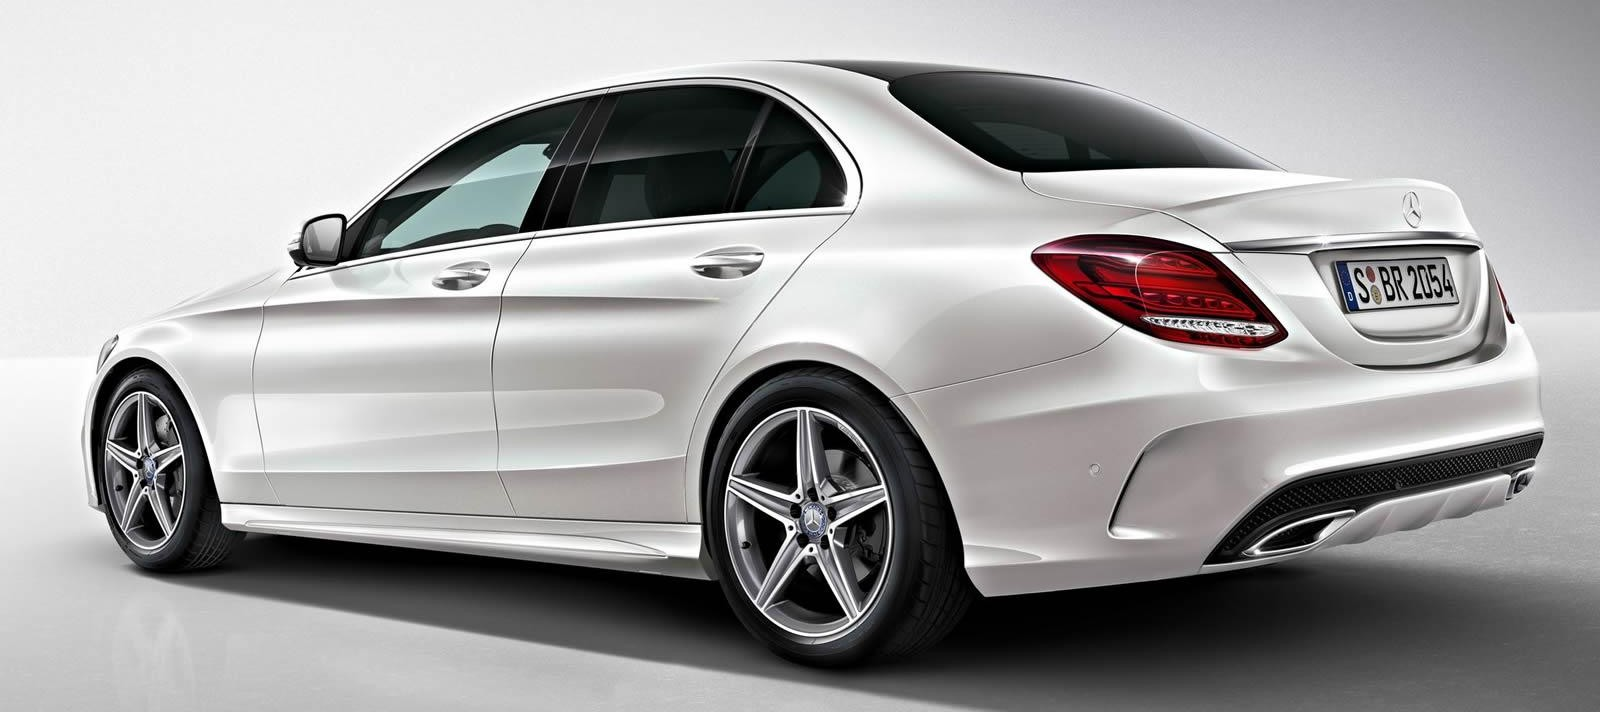 Mercedes Benz C Class 2020 Exterior Rear Side View